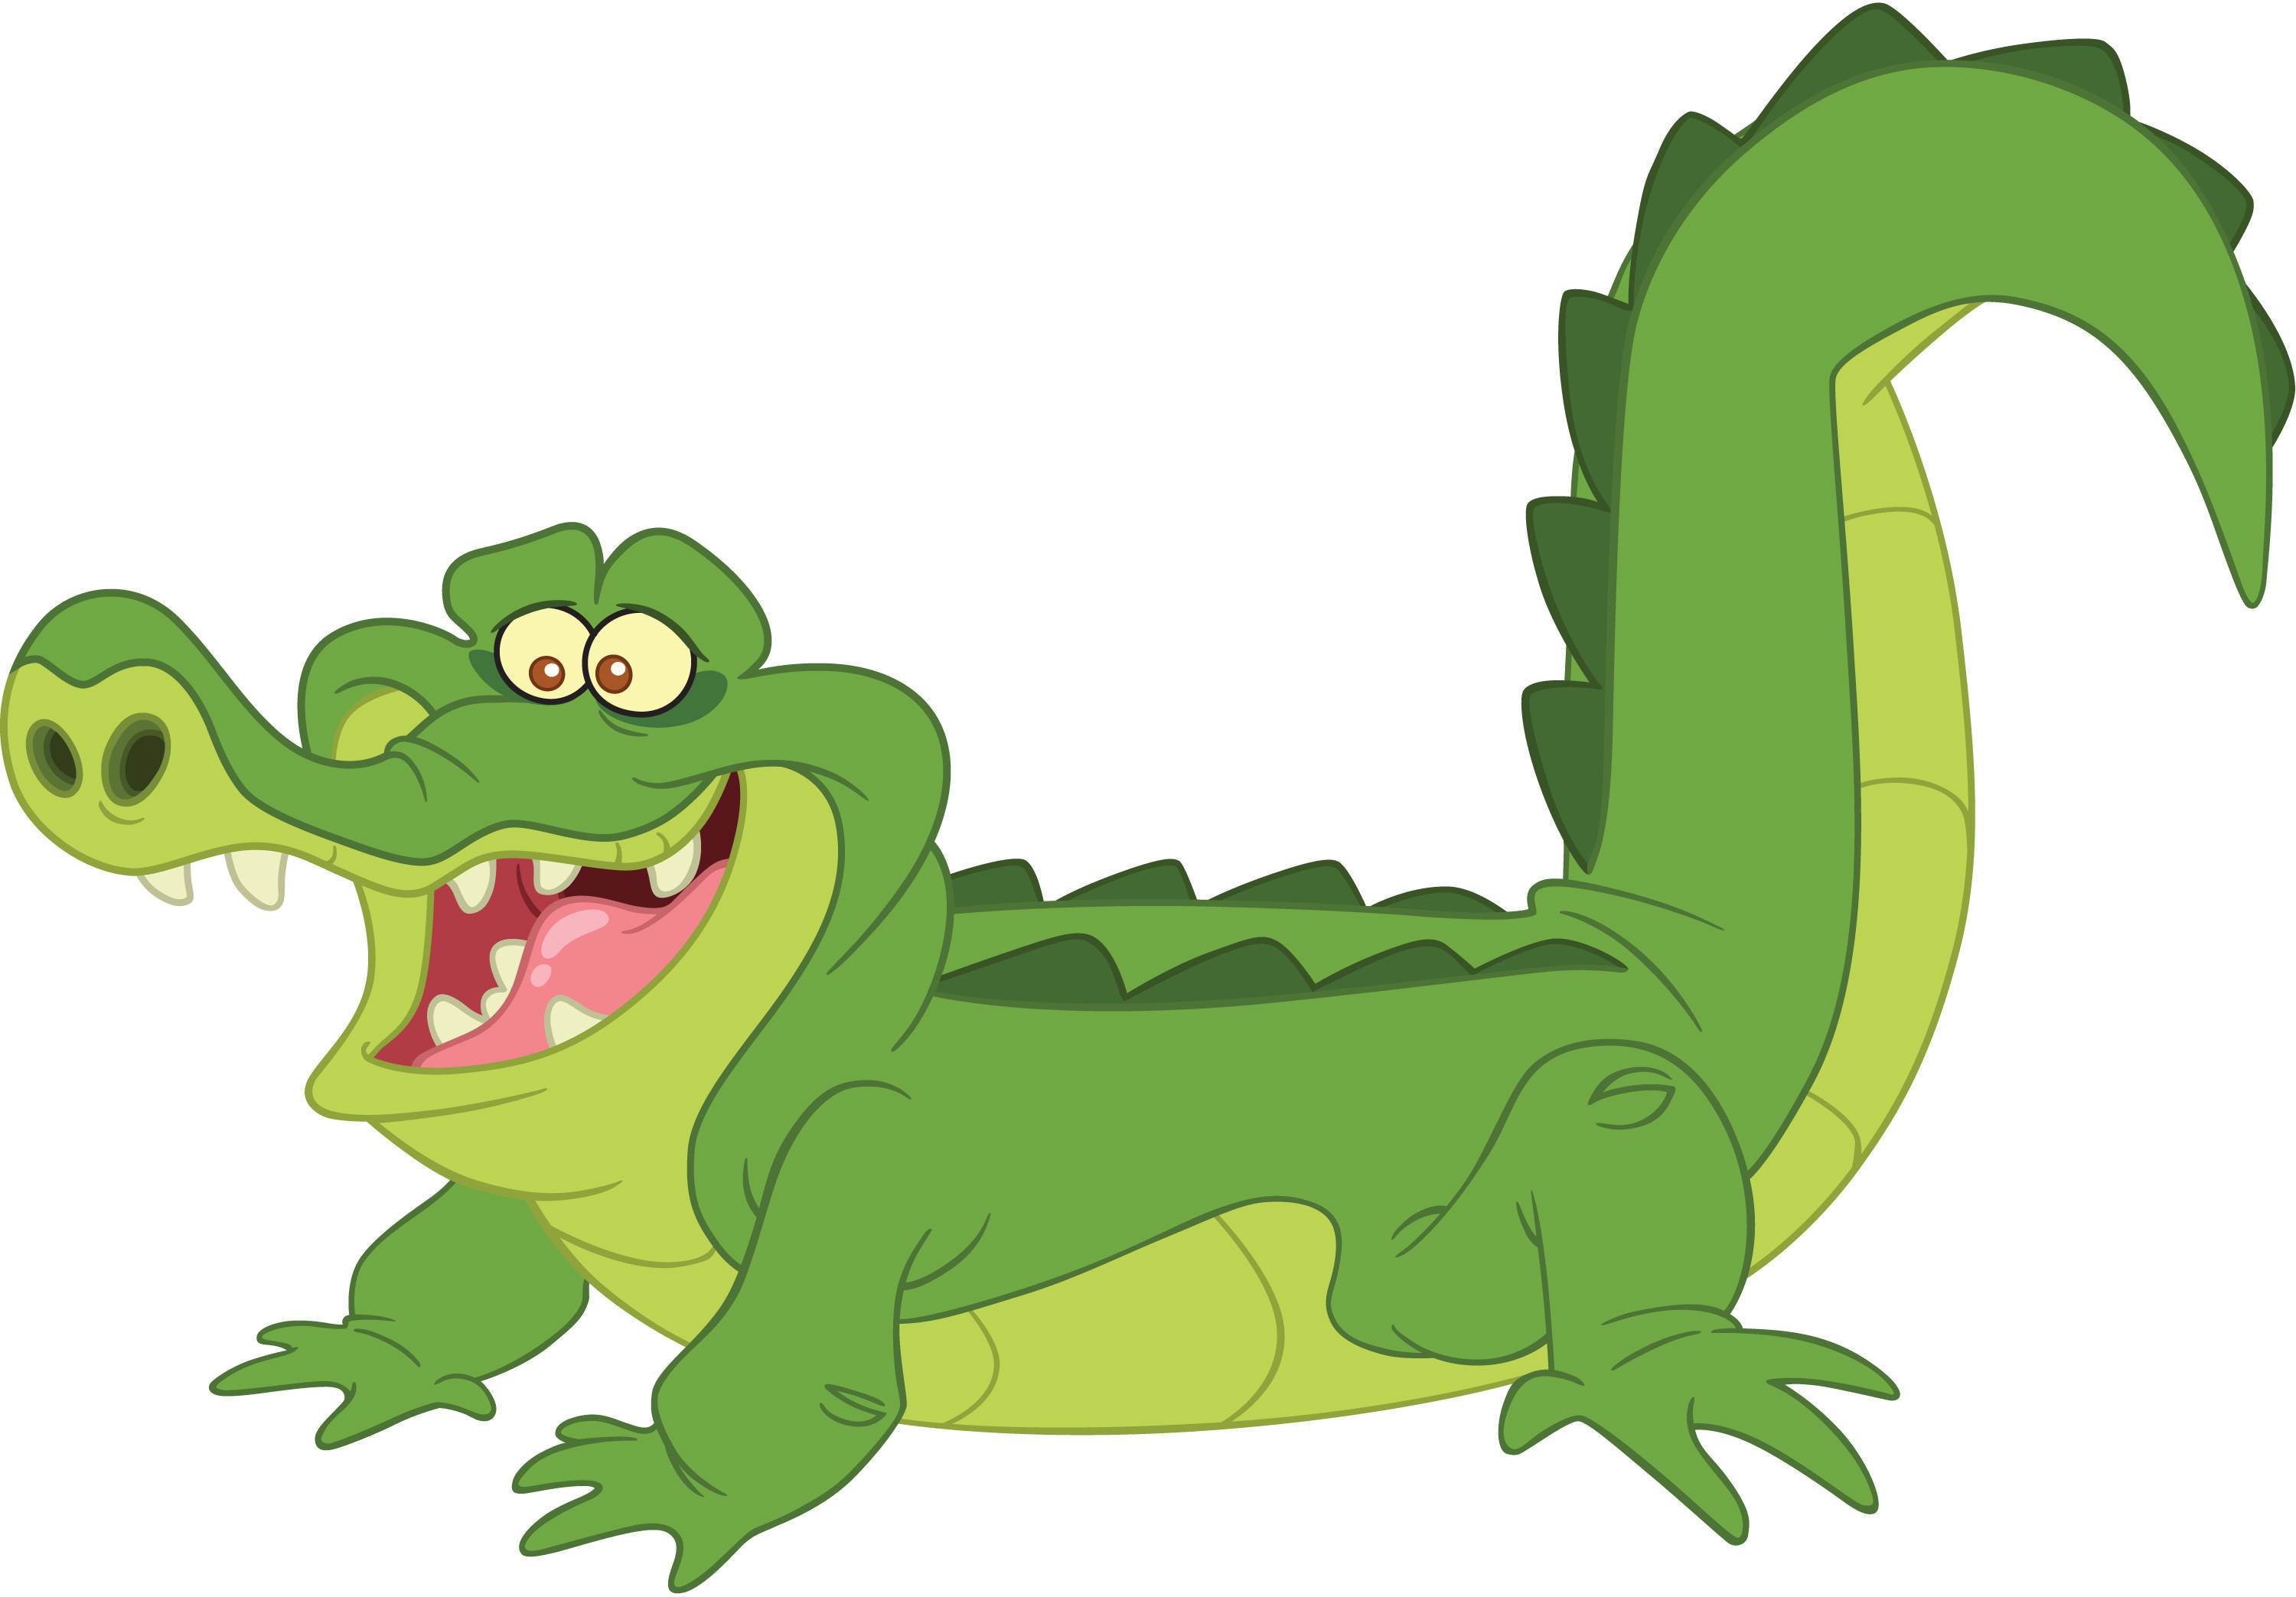 Smileys clipart crocodile 2 #34750 clipart 2 Crocodile